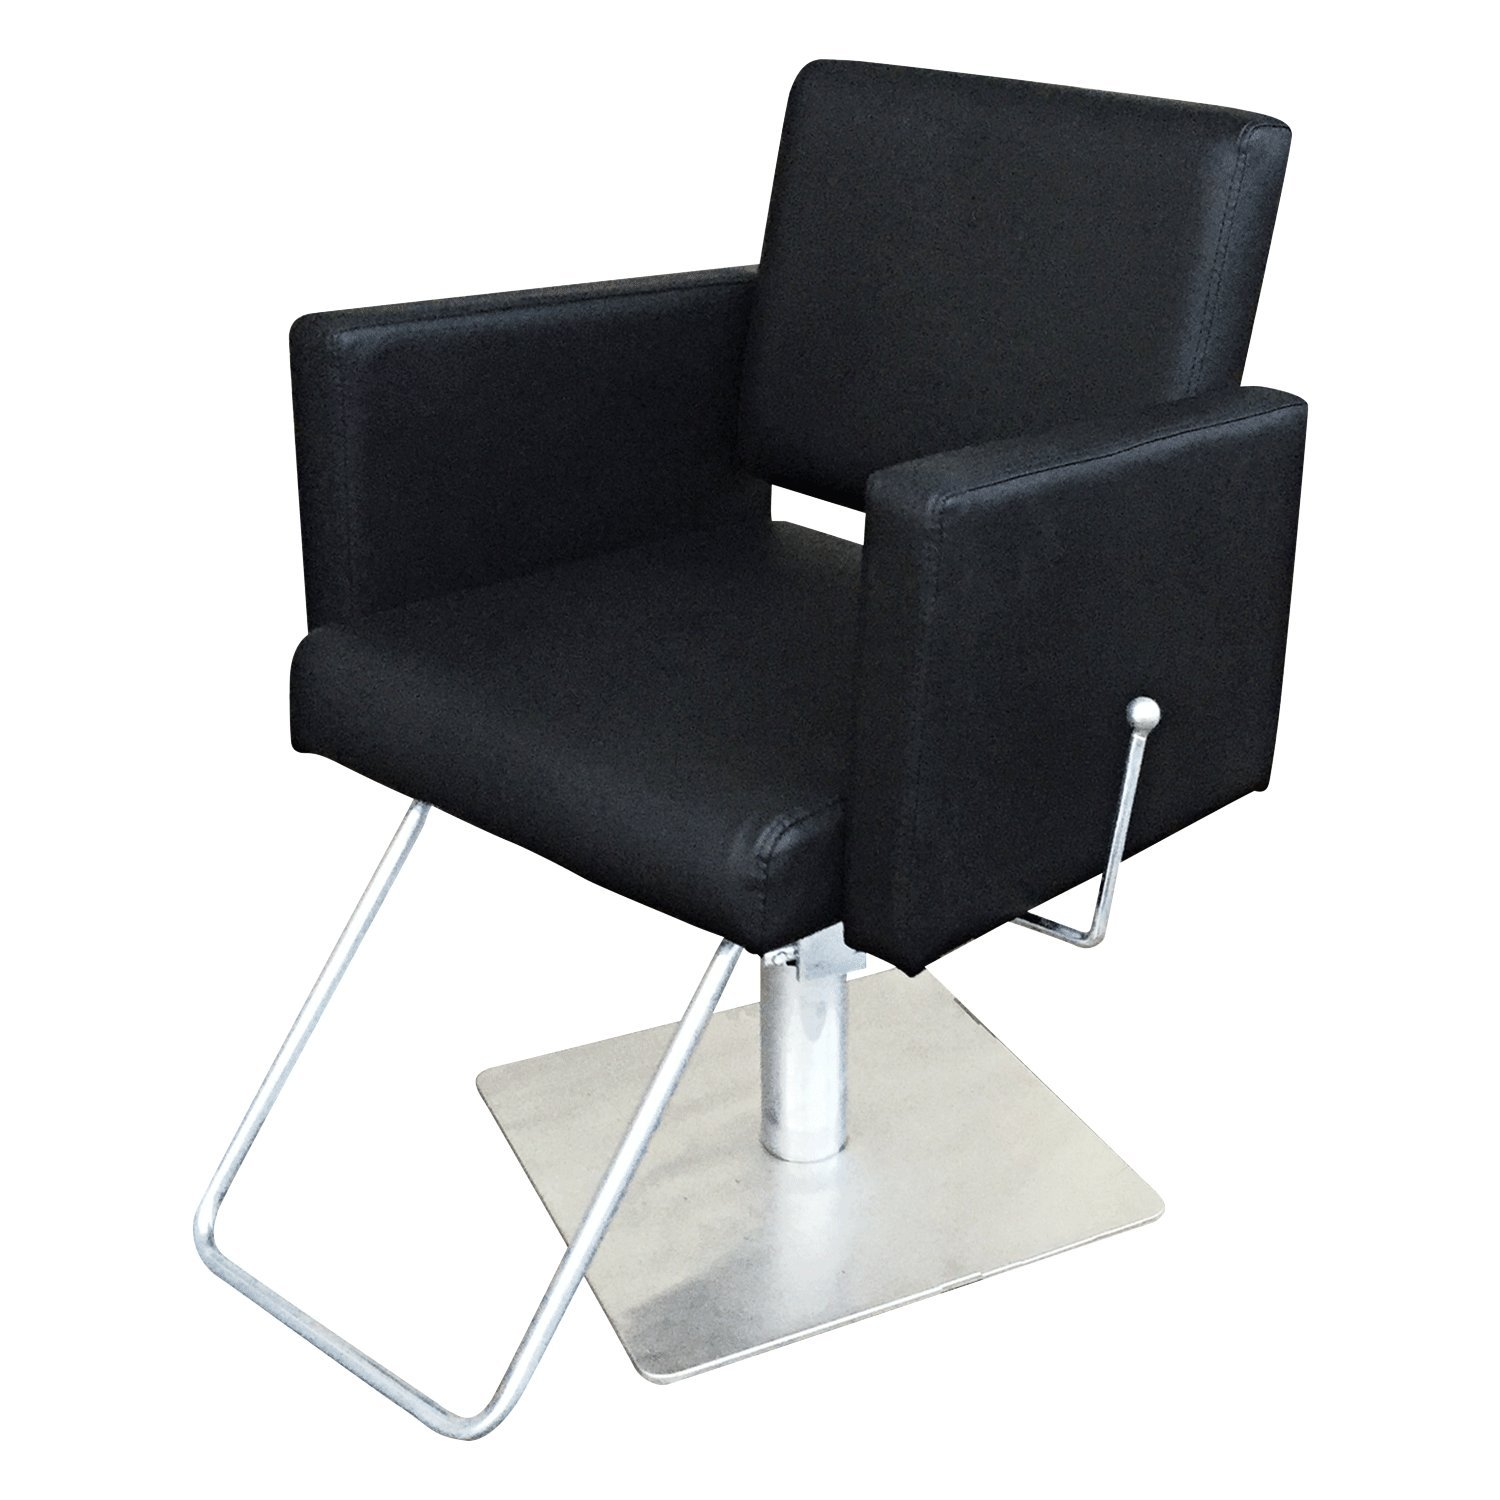 Best Picture All Square Chair